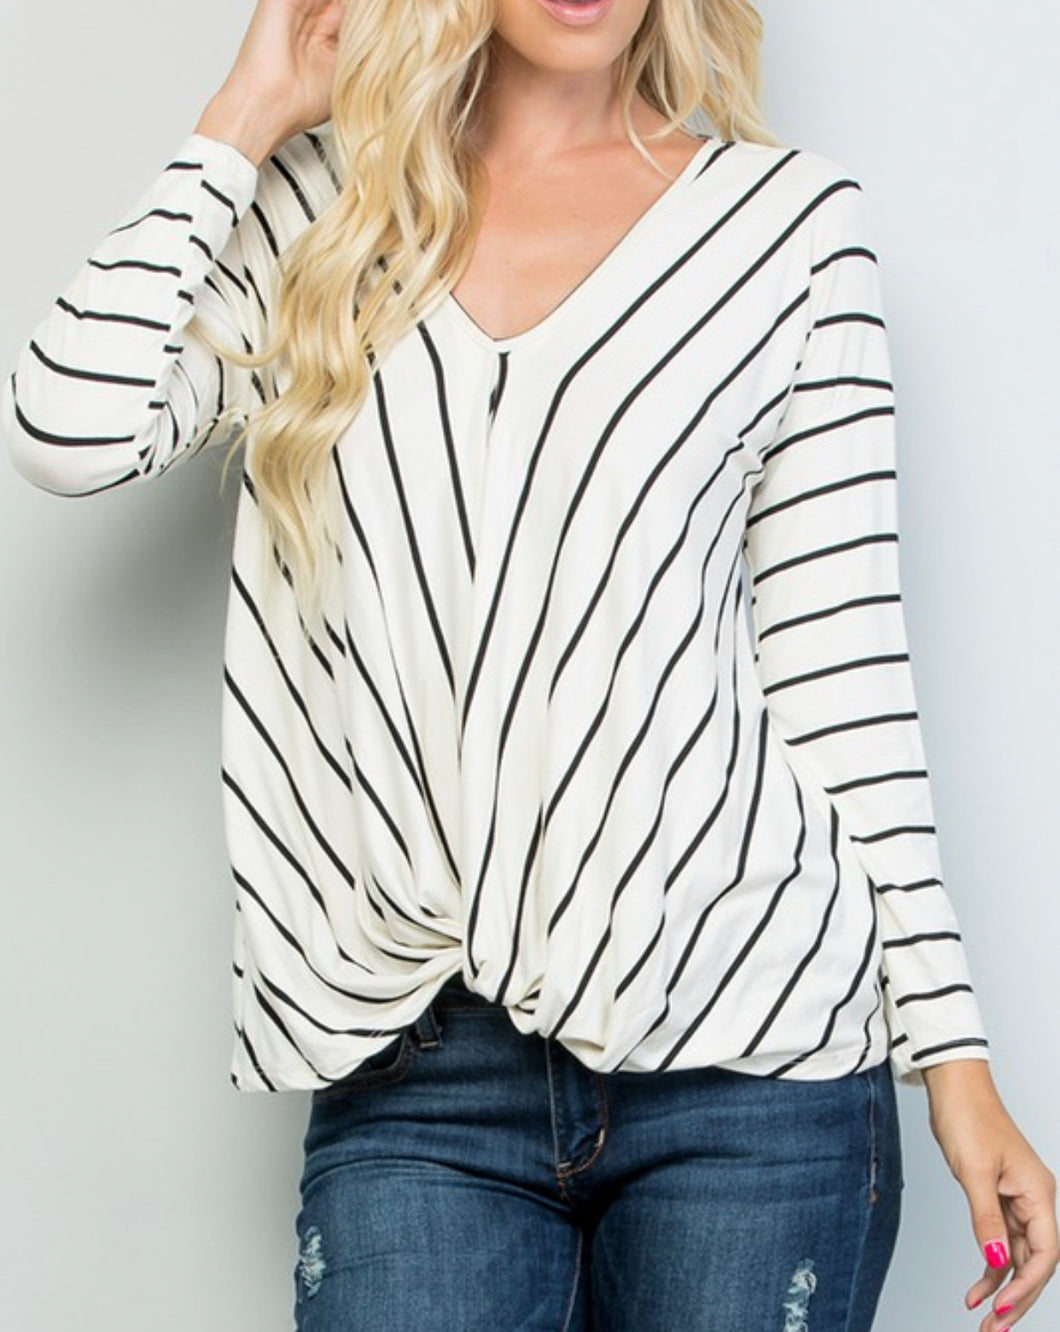 Ebony and Ivory Twisted top